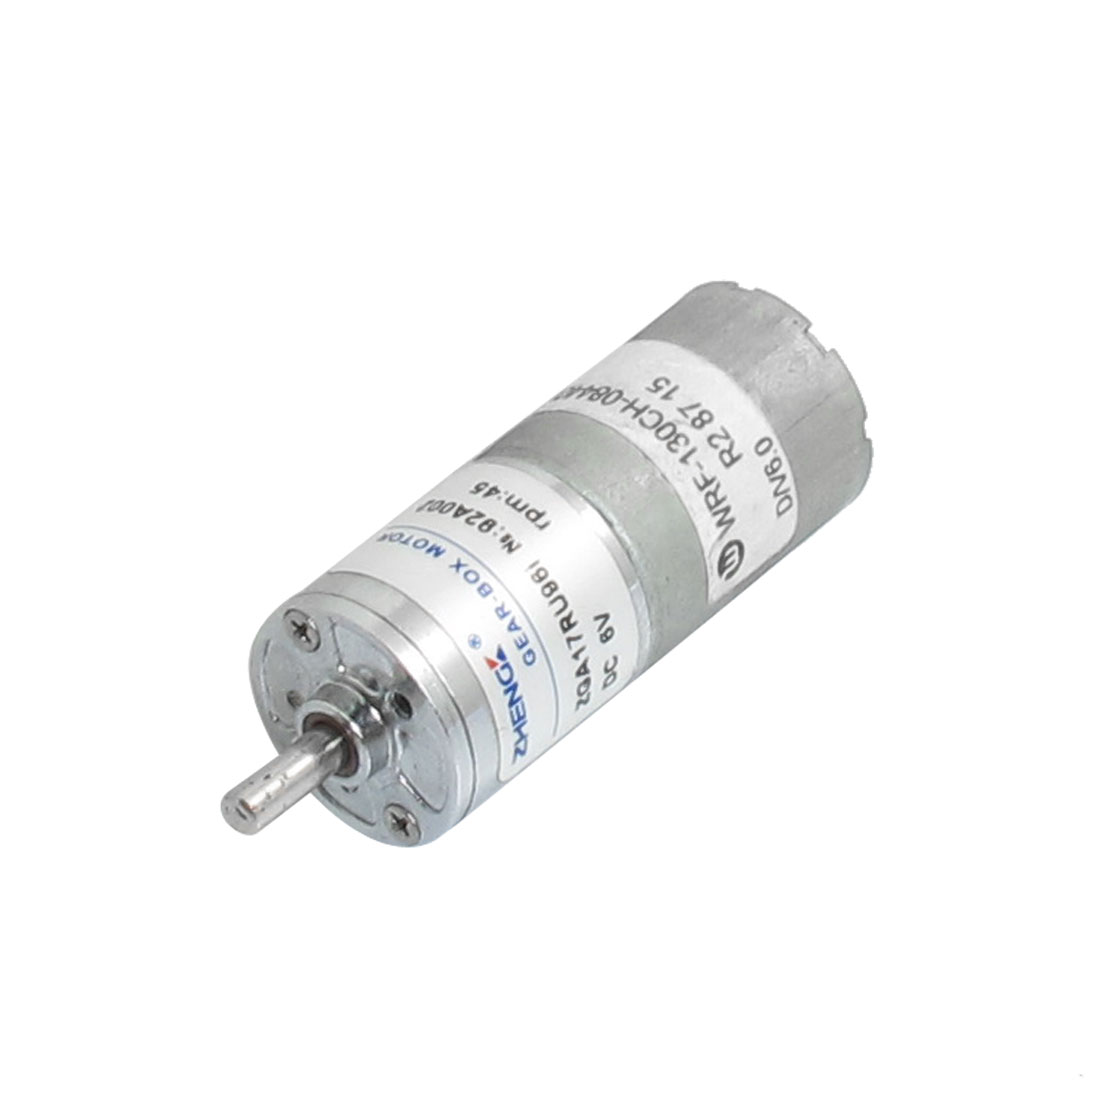 17mm Body Dia. Two Terminals Micro Electric Gear Motor 6VDC 45RPM